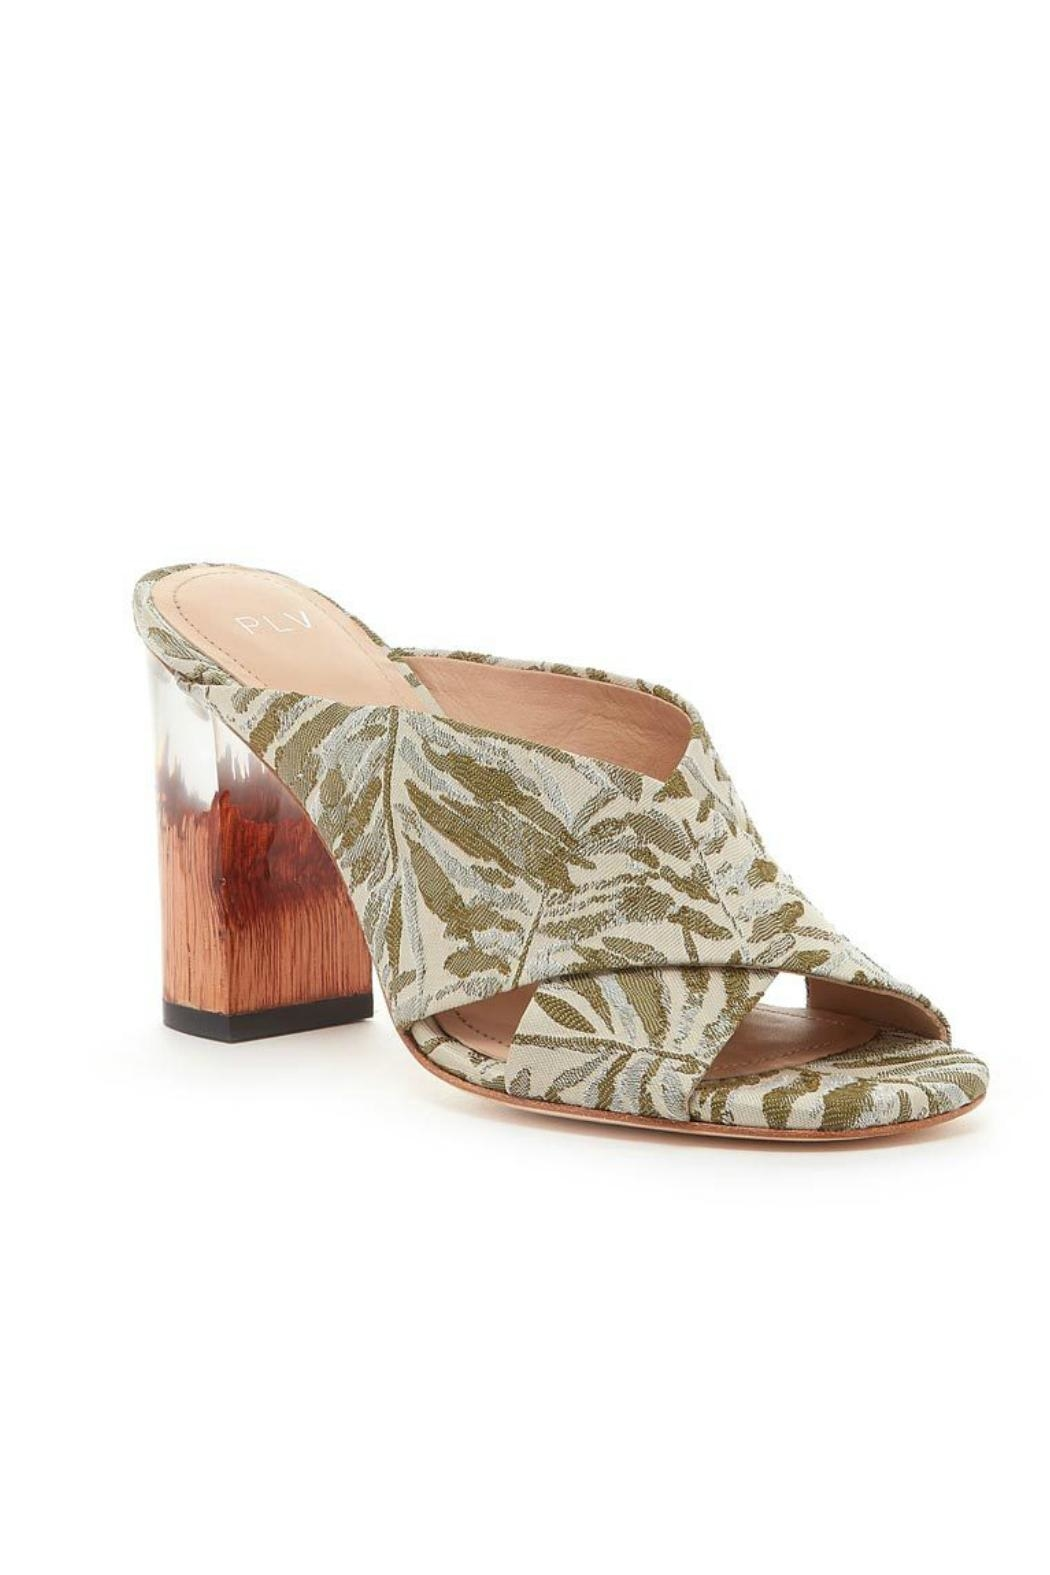 264c49493aa Pour La Victoire Harley Jungle from New Hampshire by Stiletto Shoes ...